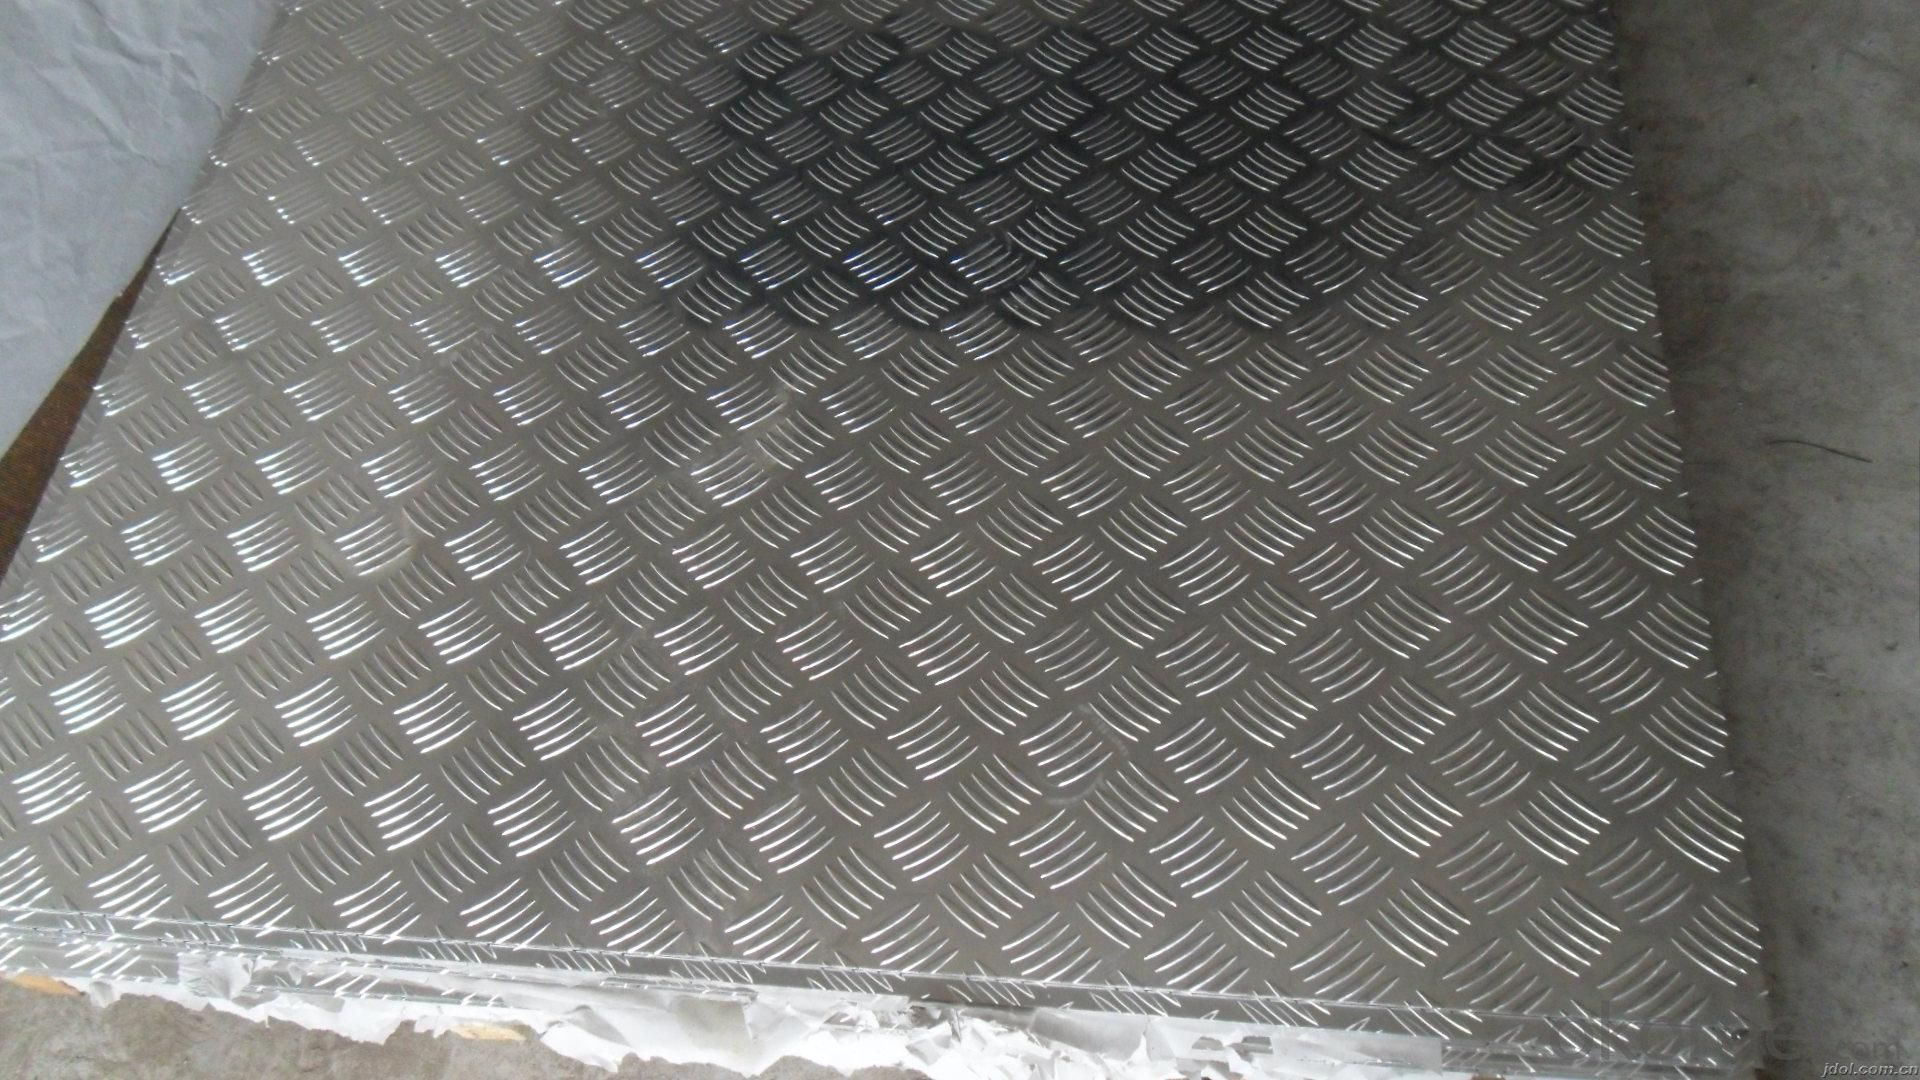 Aluminum Tread Plate 1060, 1100, 3003, 3105, 5052, 5083 Pattern: big 5 bar, small 5 bar, diamond